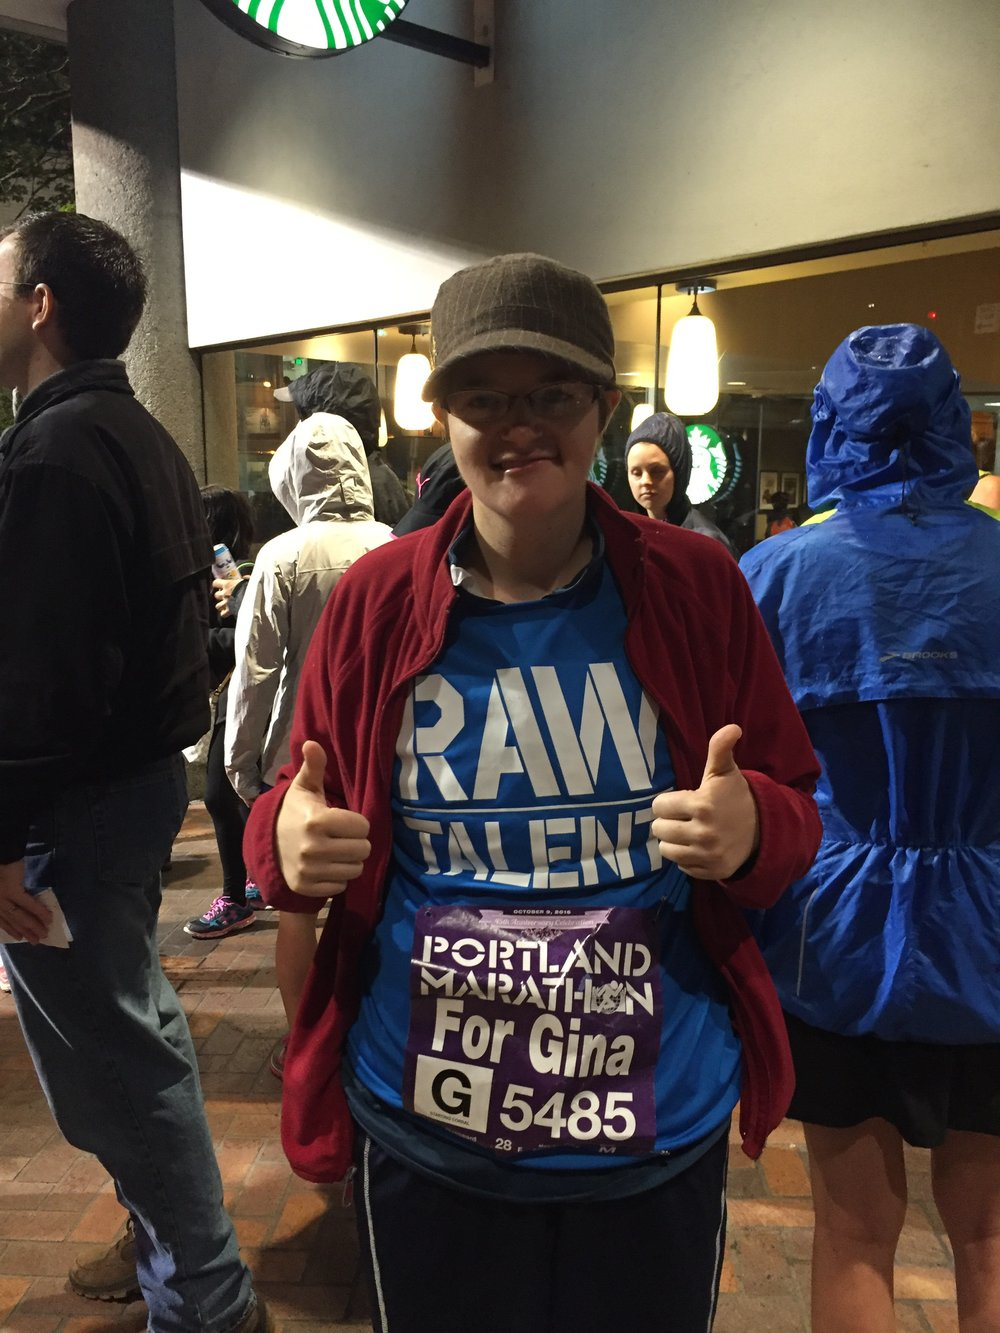 Start of Portland Marathon October 2016. 5 months after her diagnosis of Melanoma in May 2016.